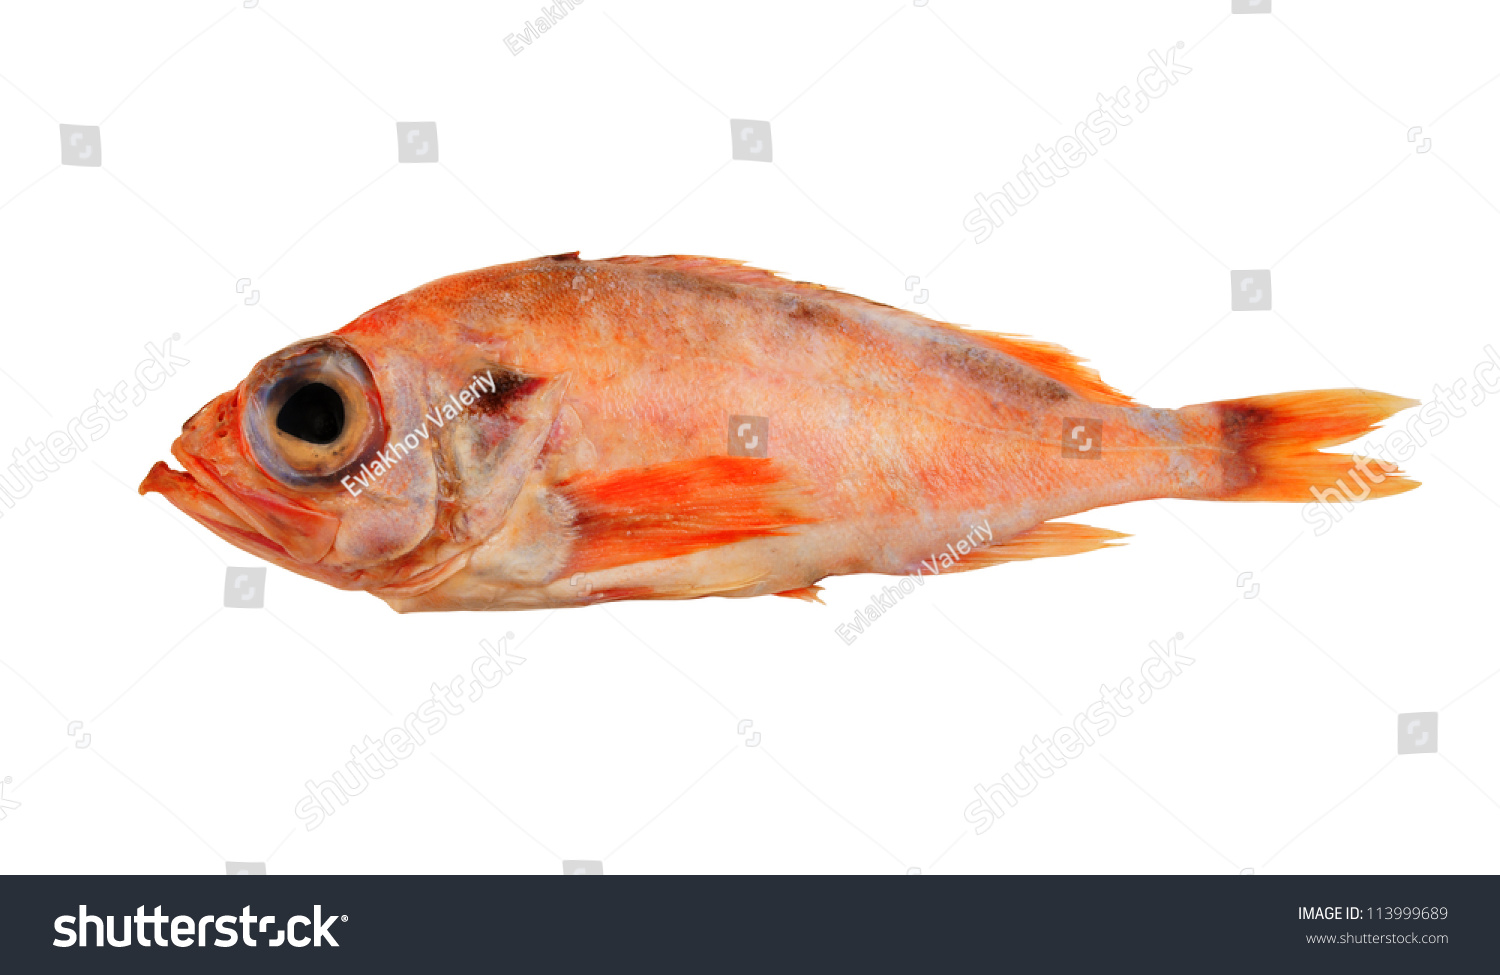 Redfish ocean perch isolated on white stock photo for Ocean perch fish